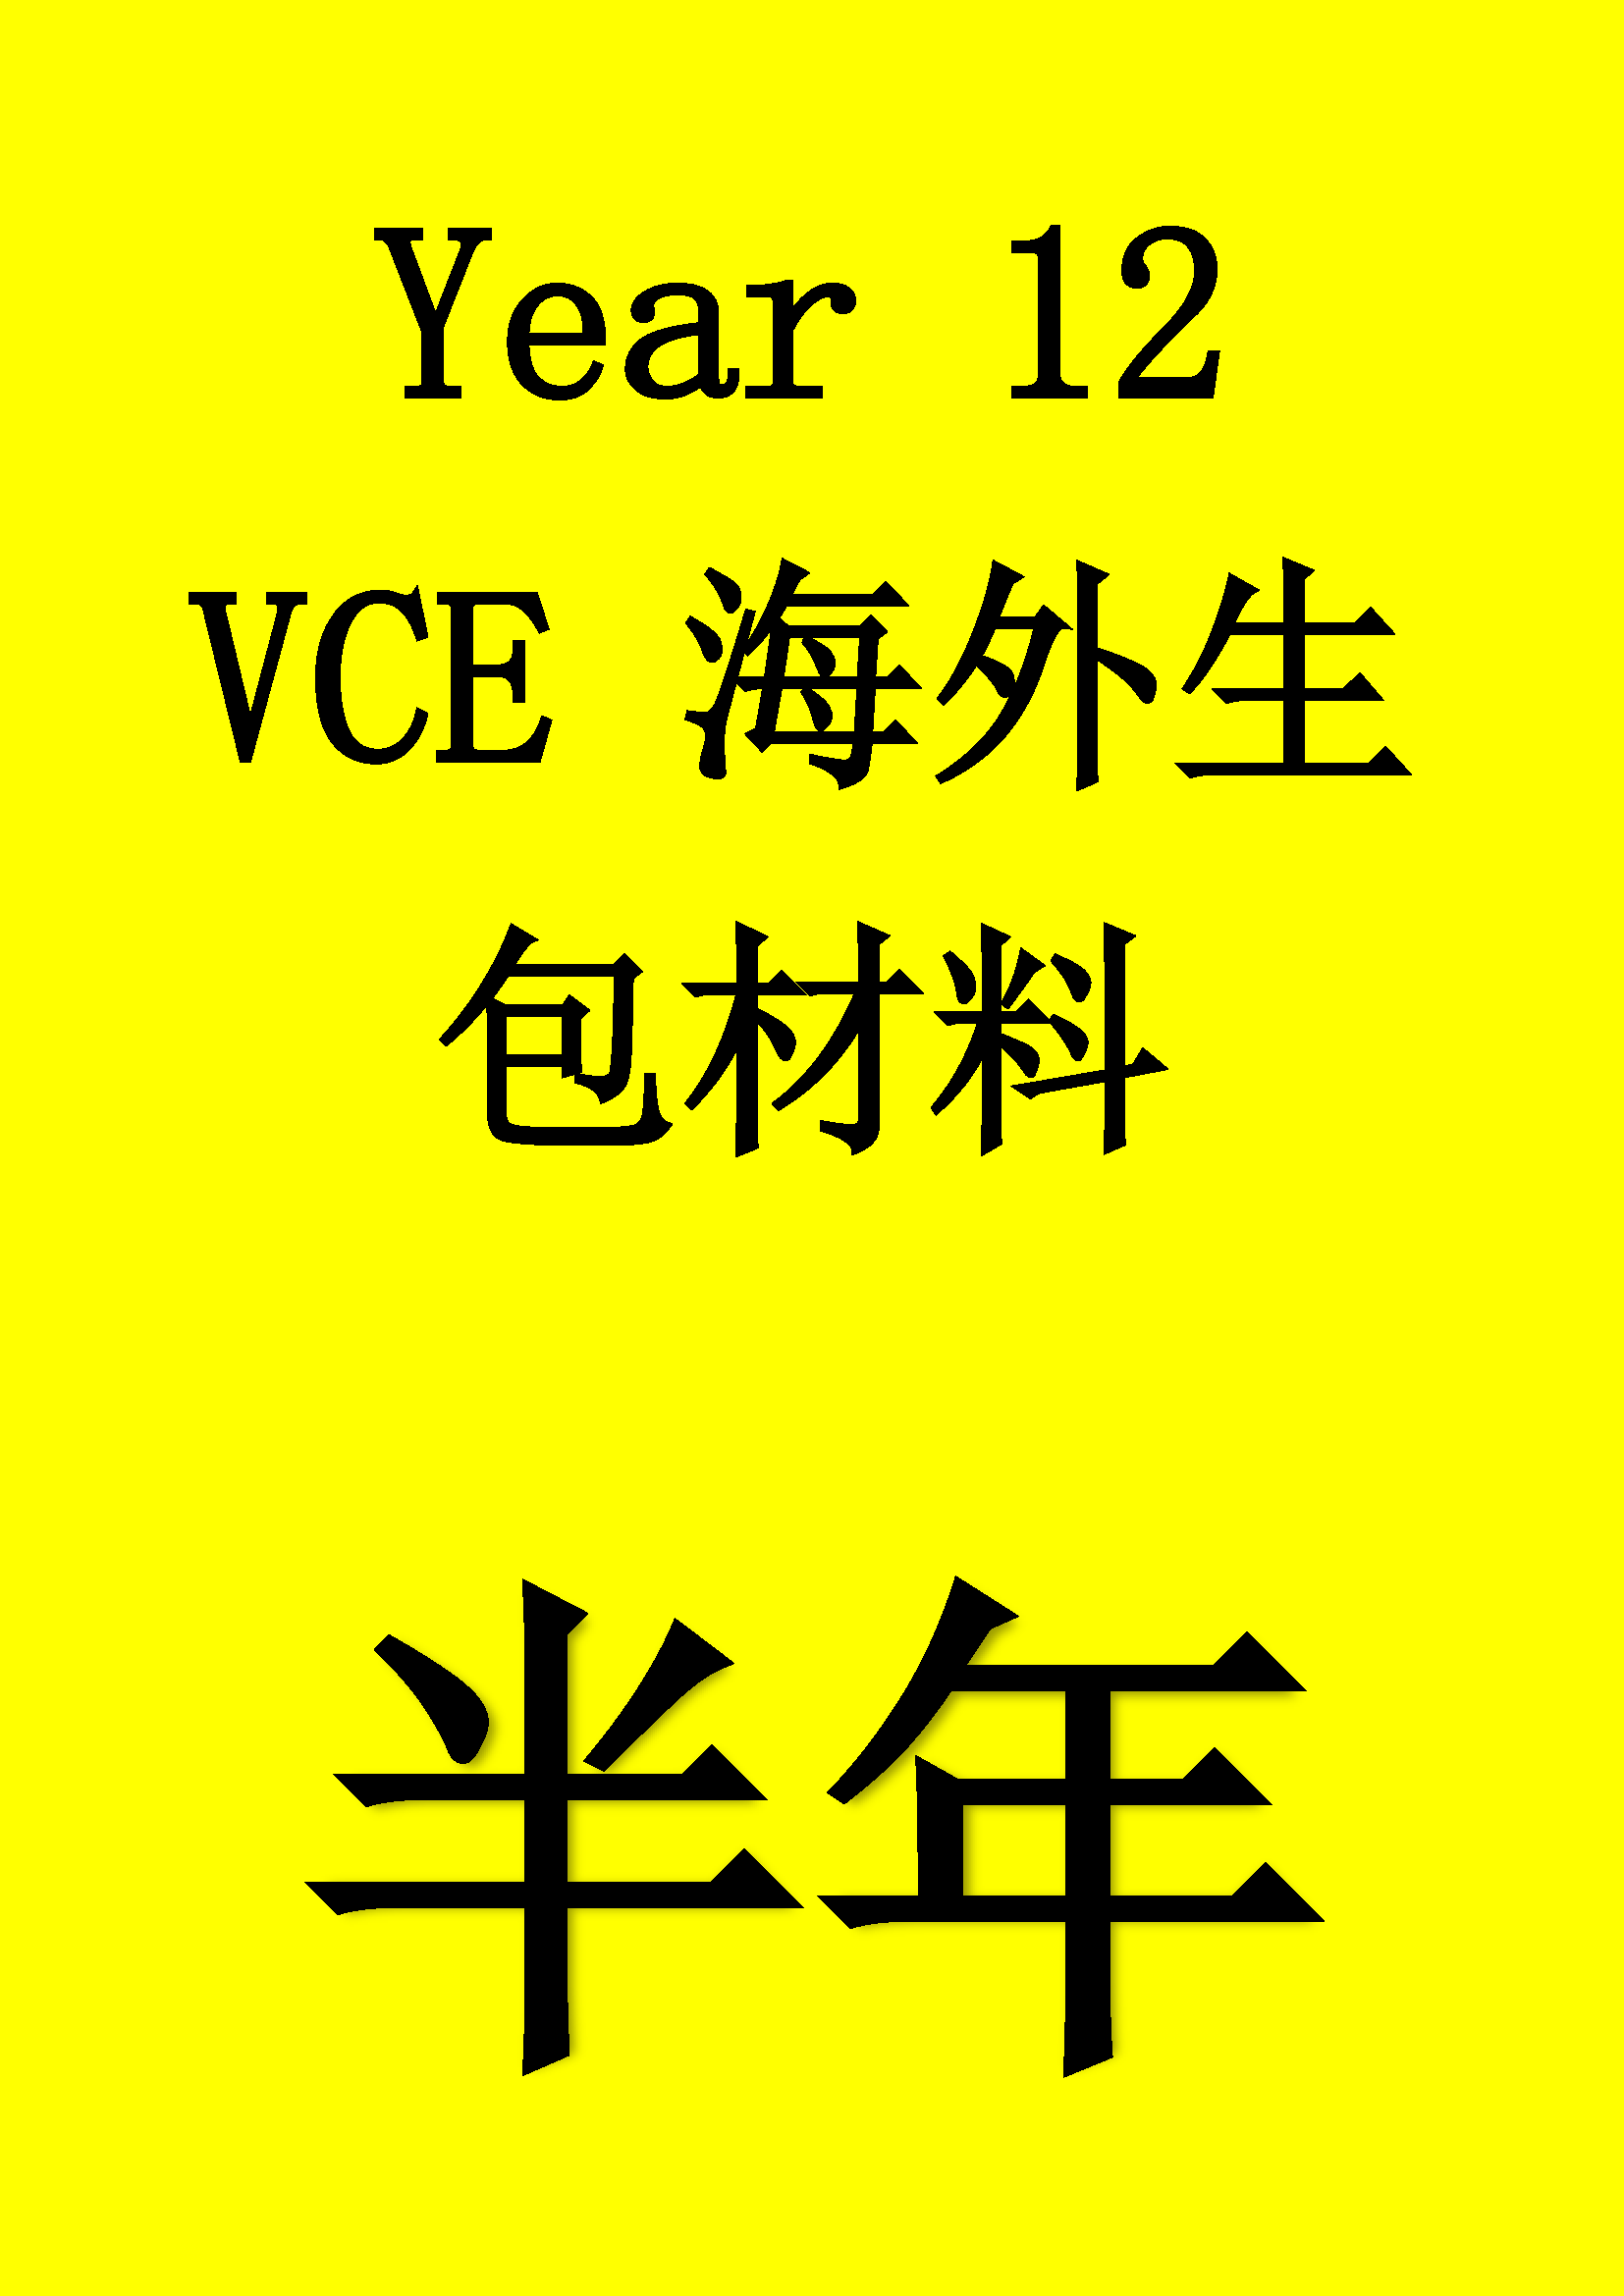 VCE Chinese Year 12 Oversea Student Half year